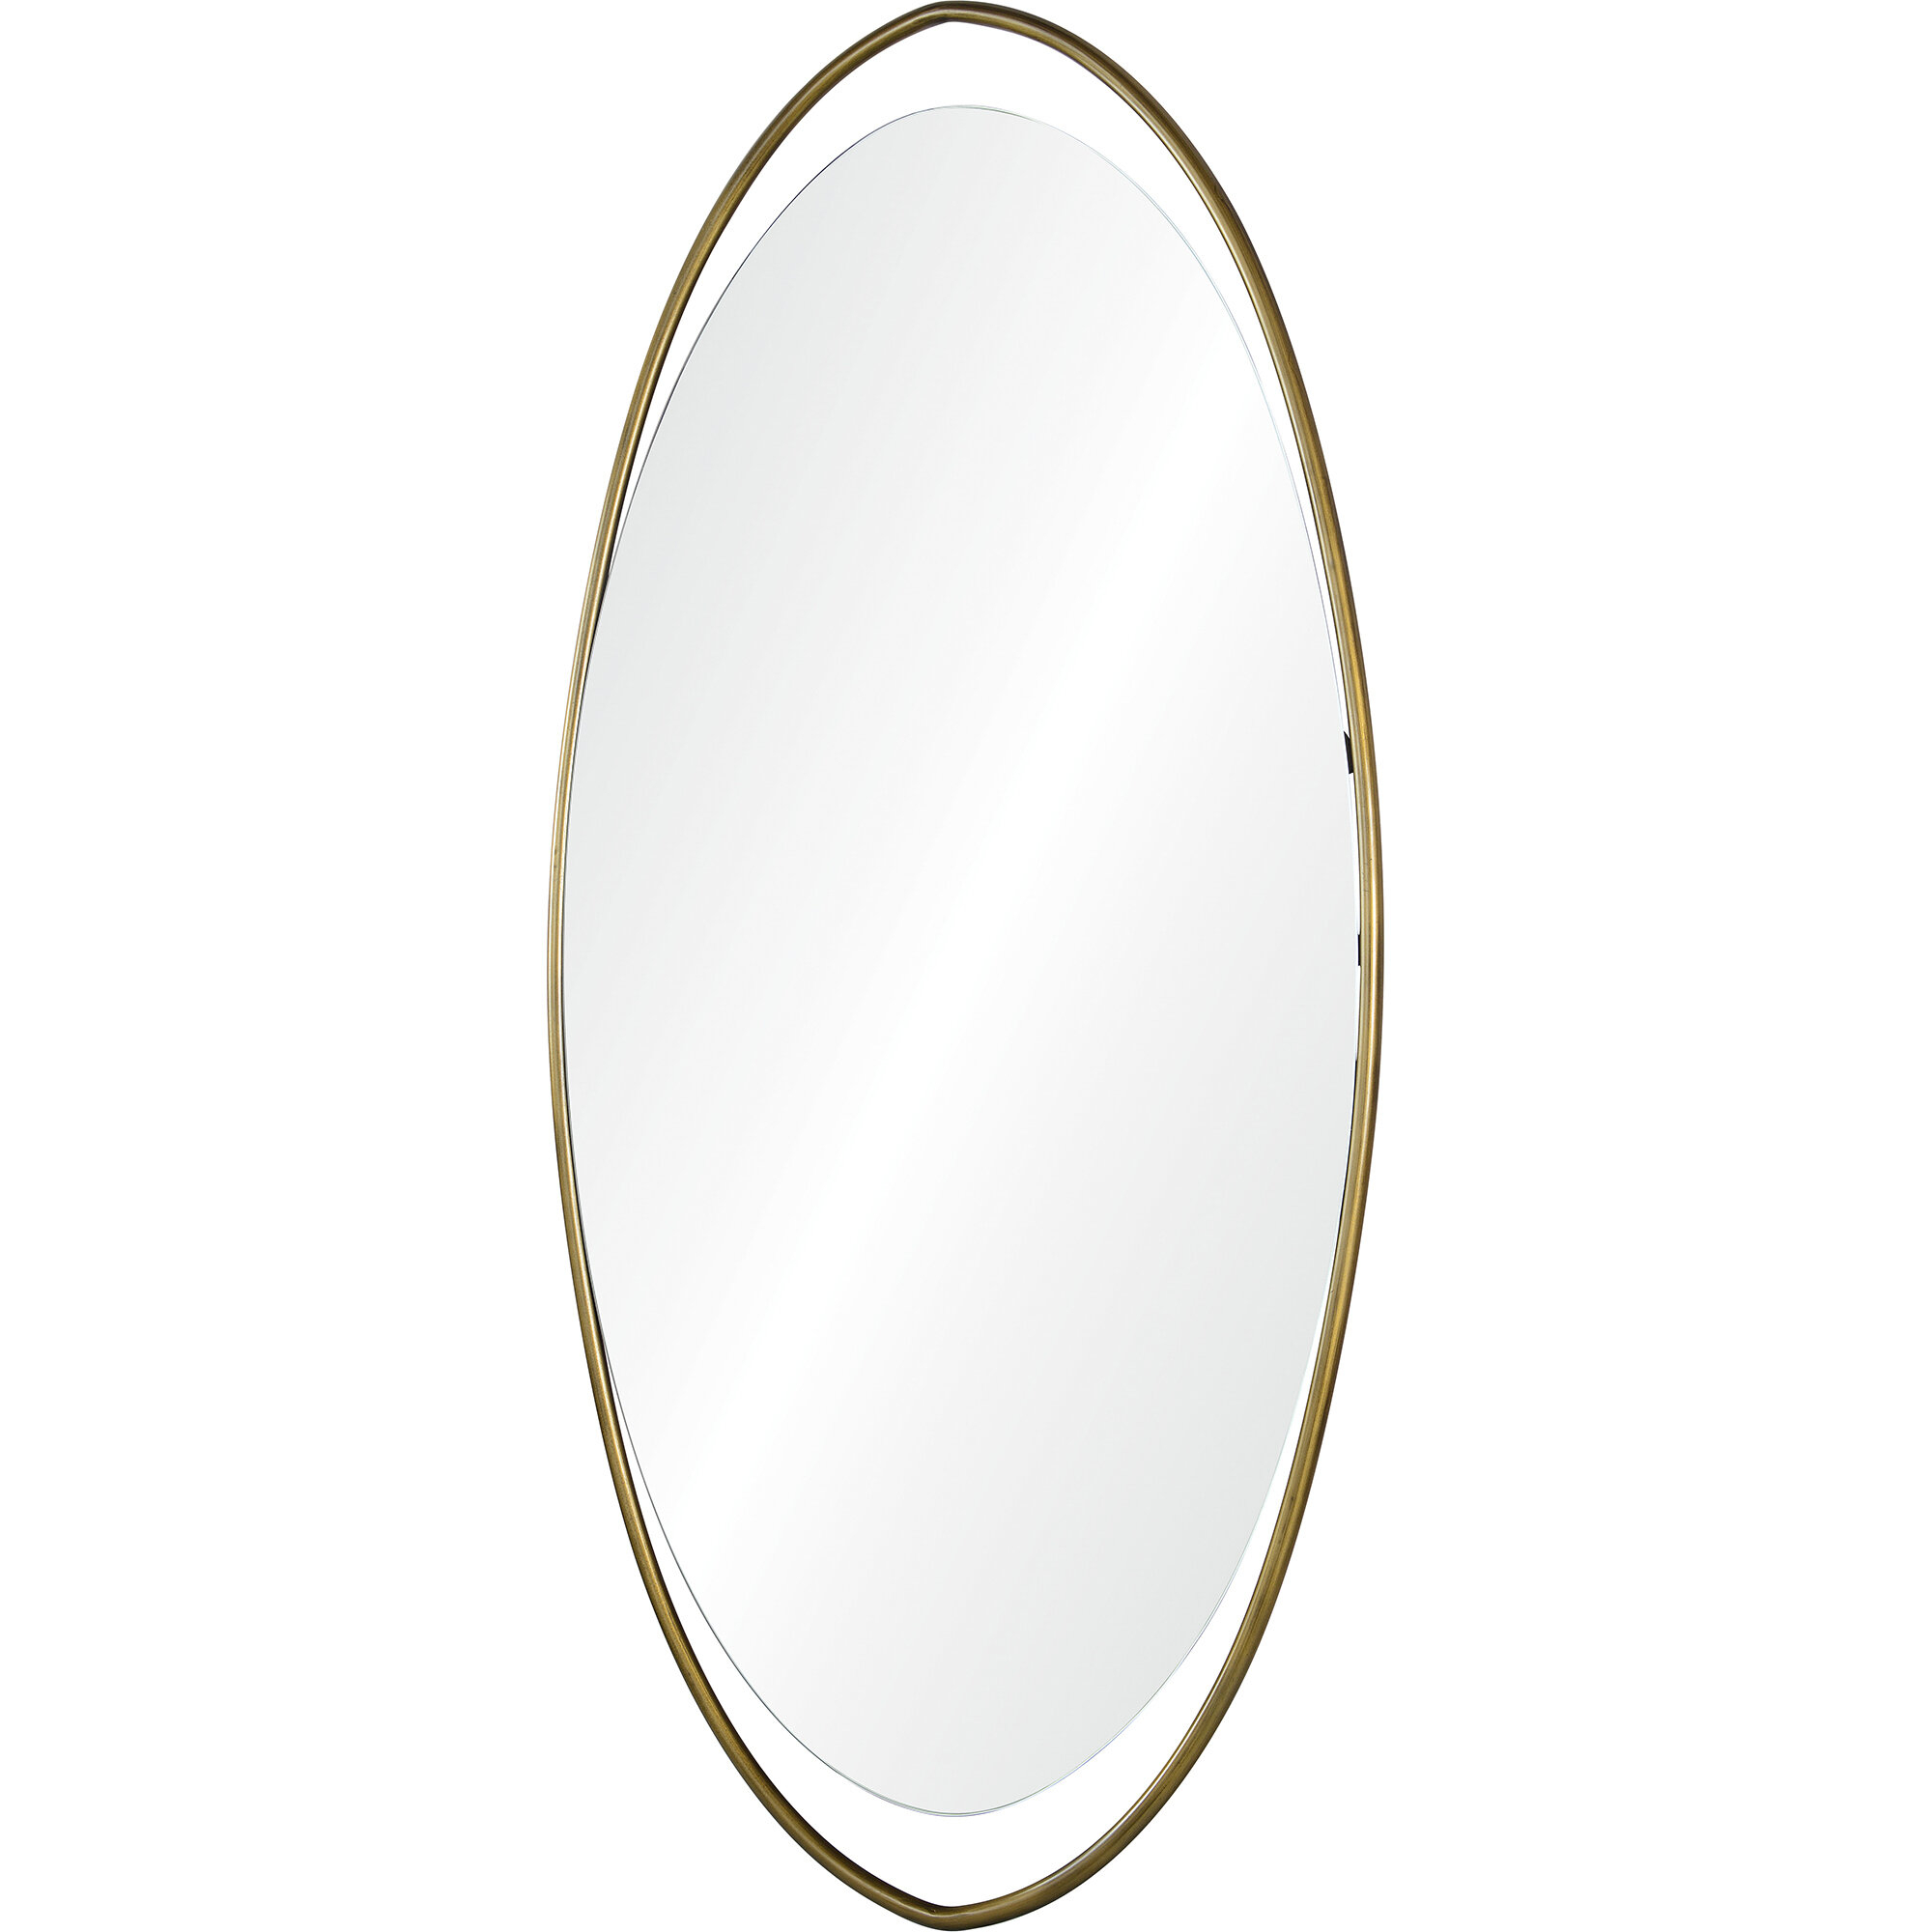 Castellano Modern And Contemporary Accent Mirror Pertaining To Mahanoy Modern And Contemporary Distressed Accent Mirrors (Image 5 of 20)